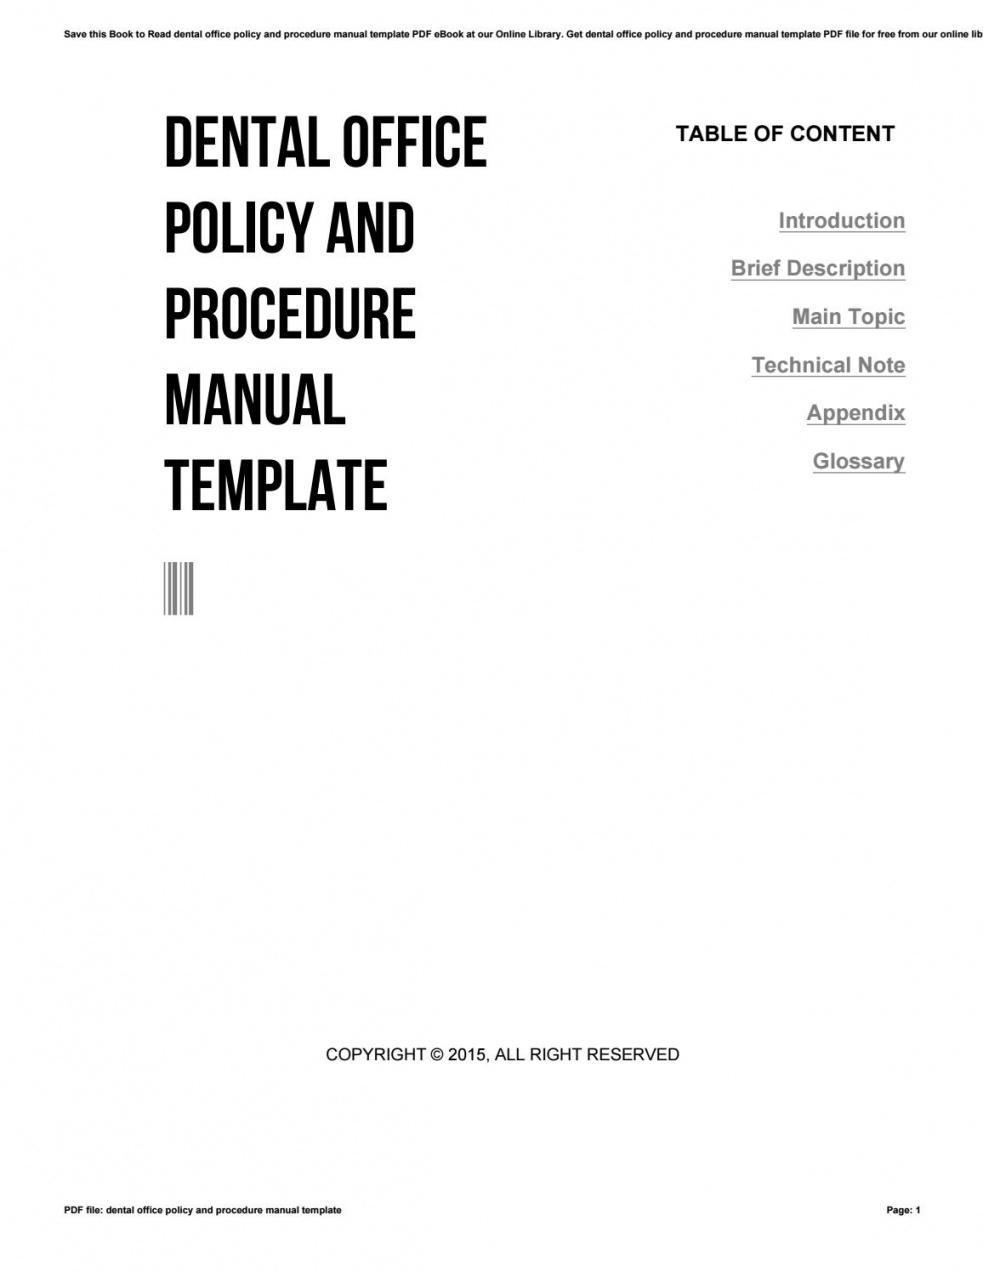 Free Dental Office Policy And Procedure Manual Template By